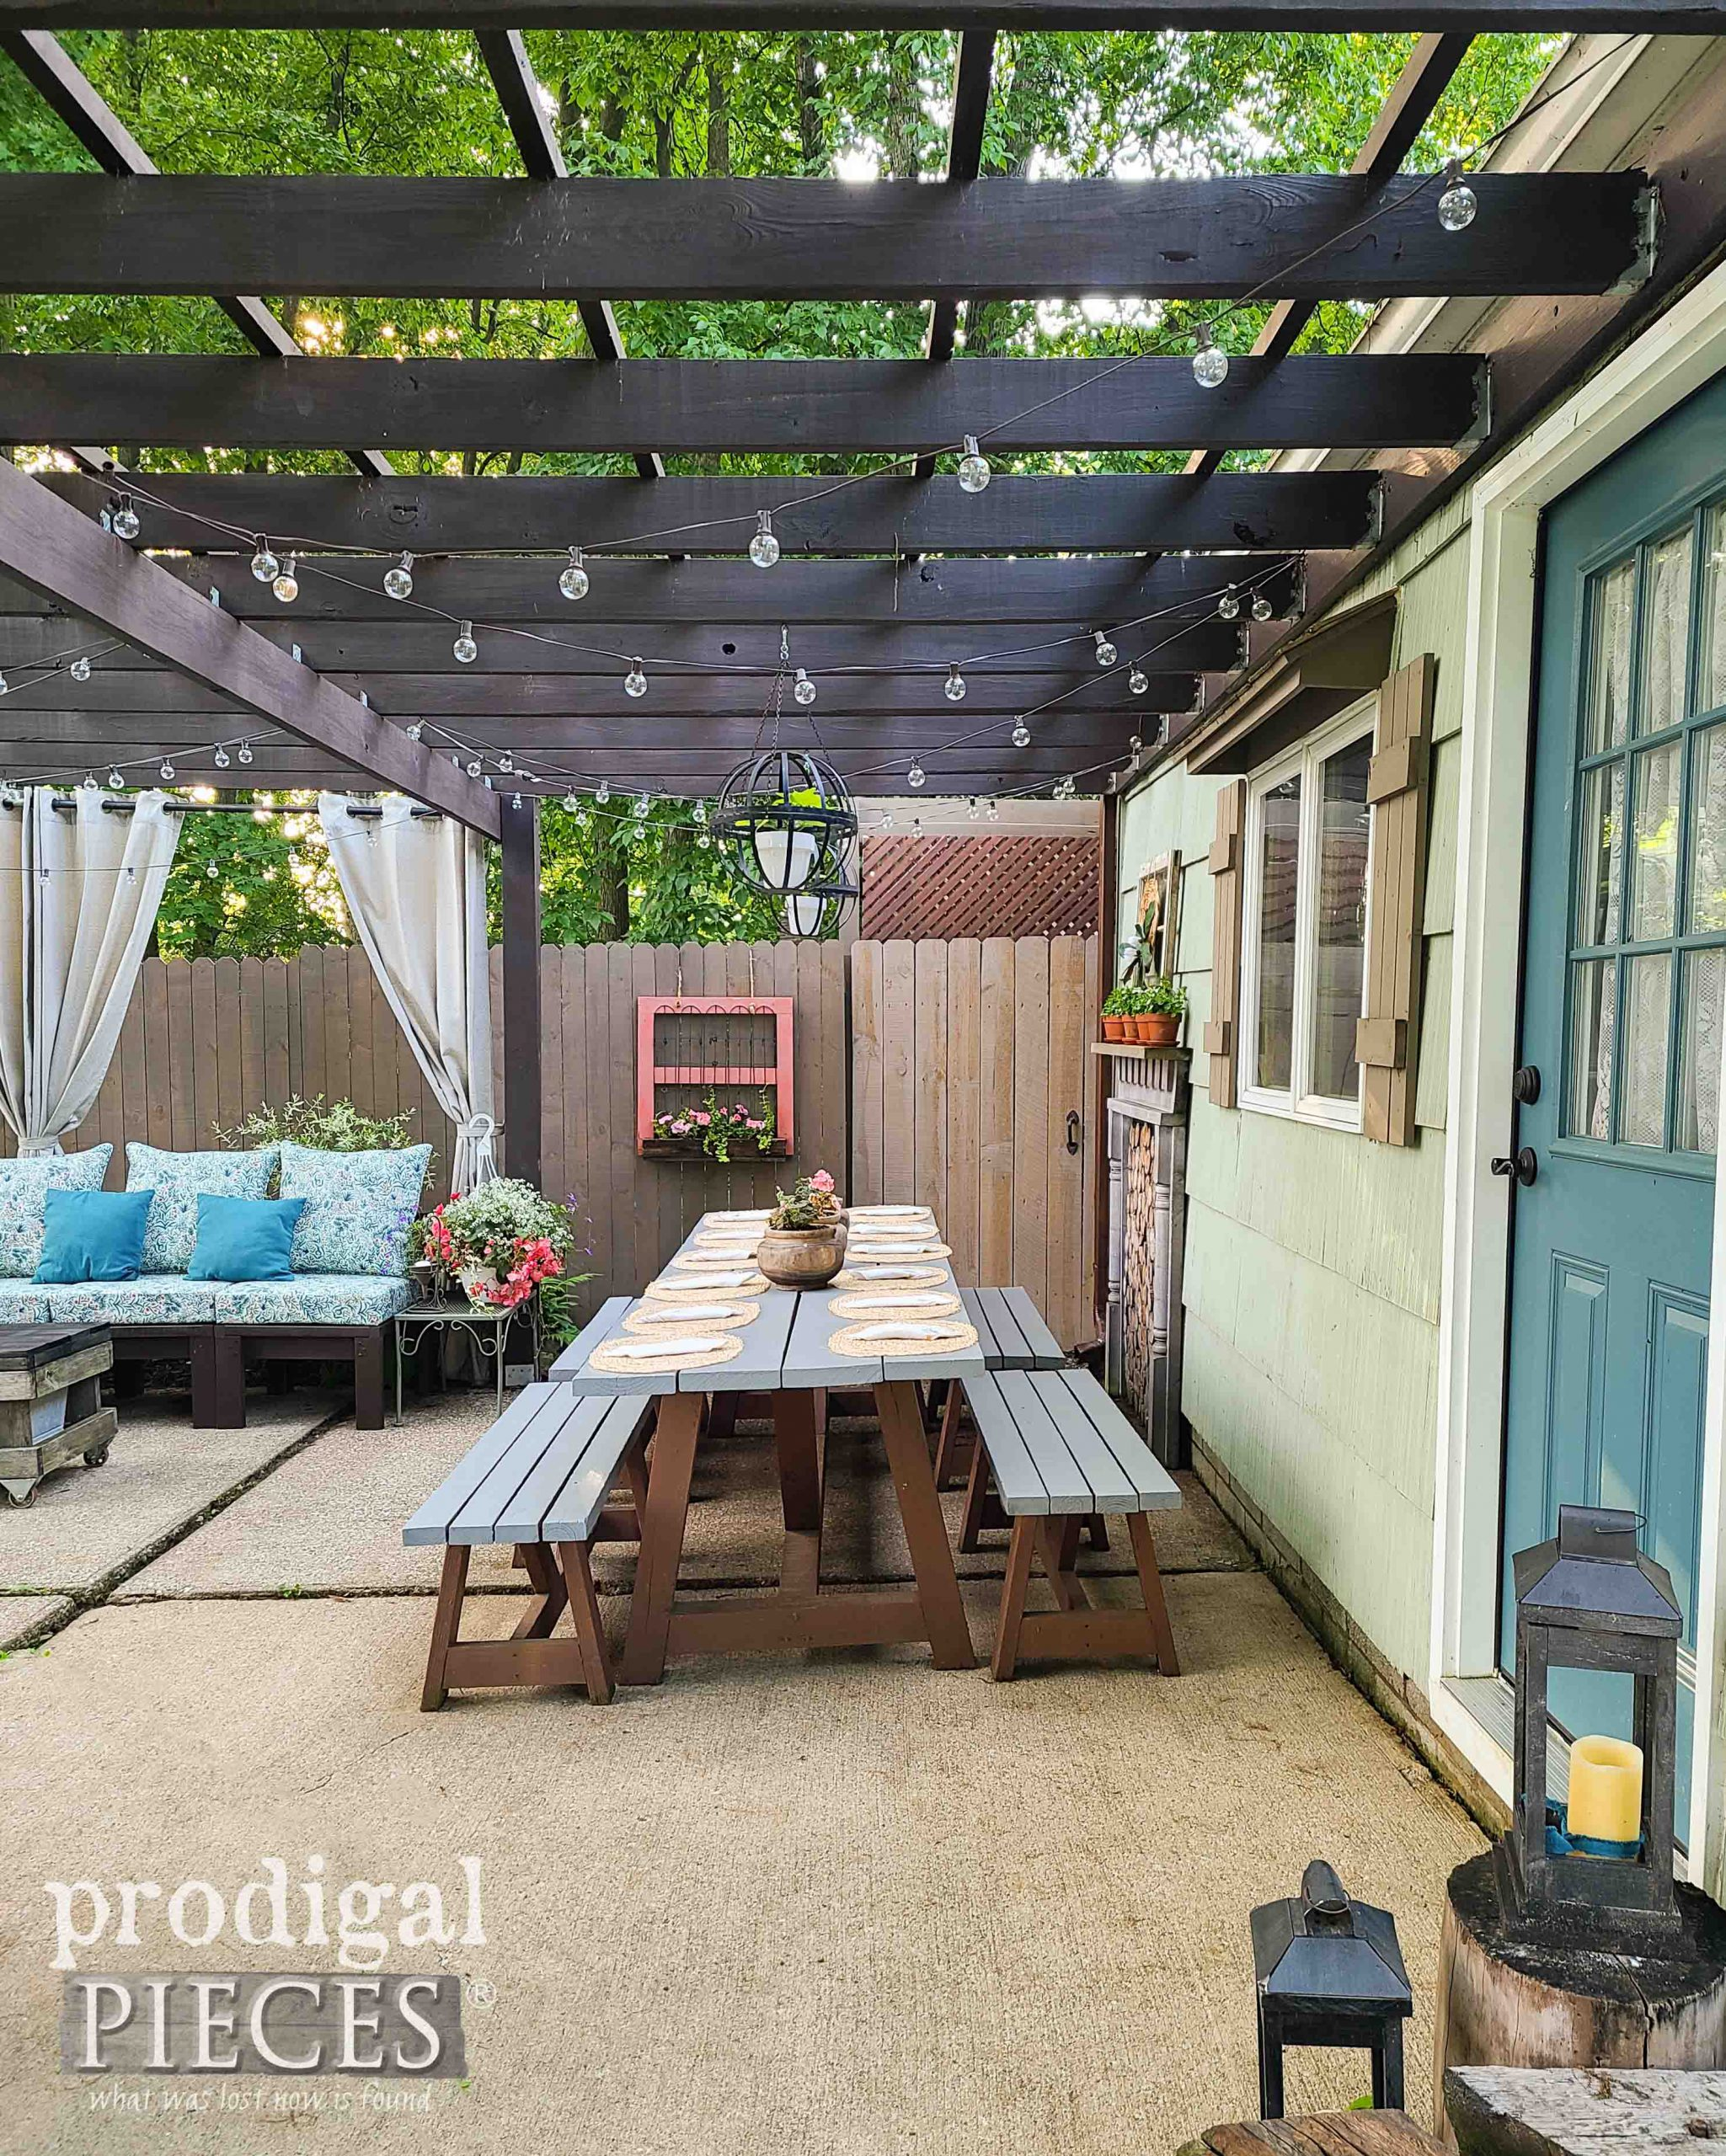 Outdoor Dining Patio Table View by Prodigal Pieces | shop.prodigalpieces.com #prodigalpieces #diy #patio #outdoor #backyard